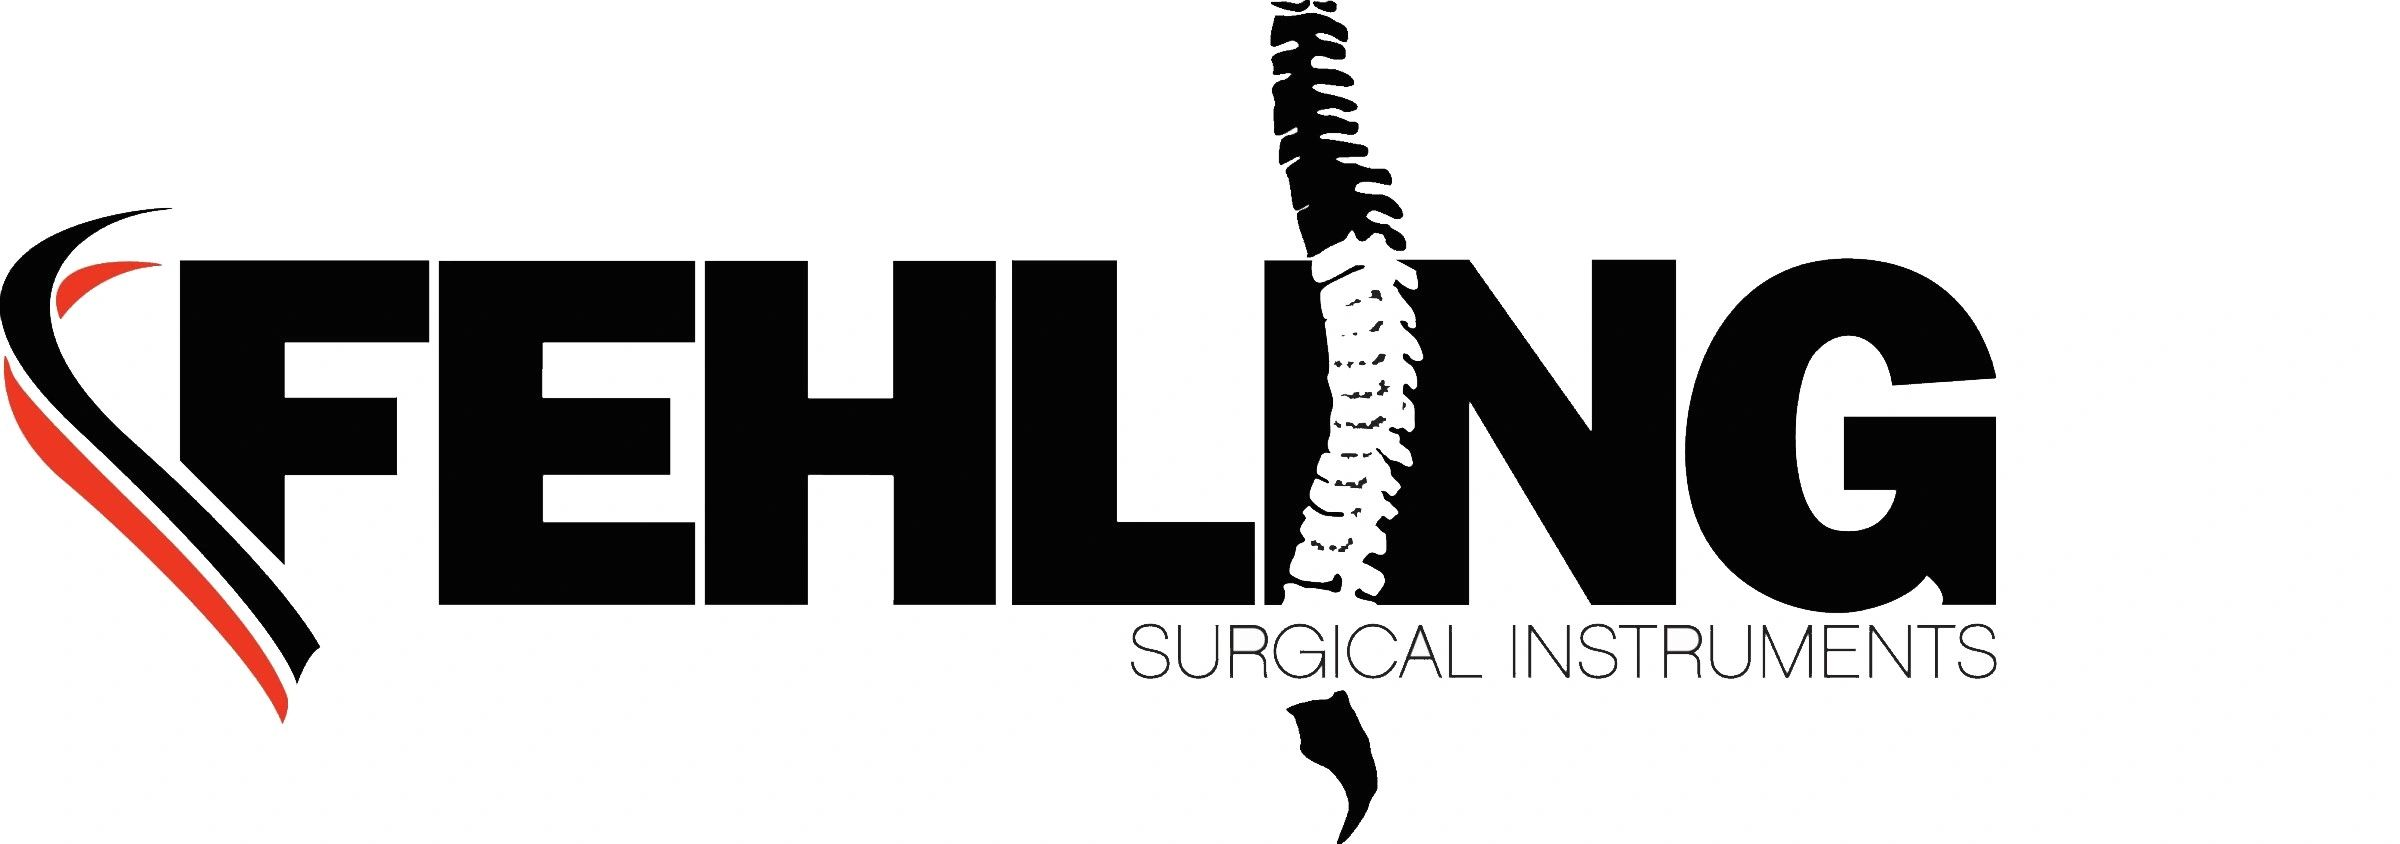 Fehling Surgical - Home